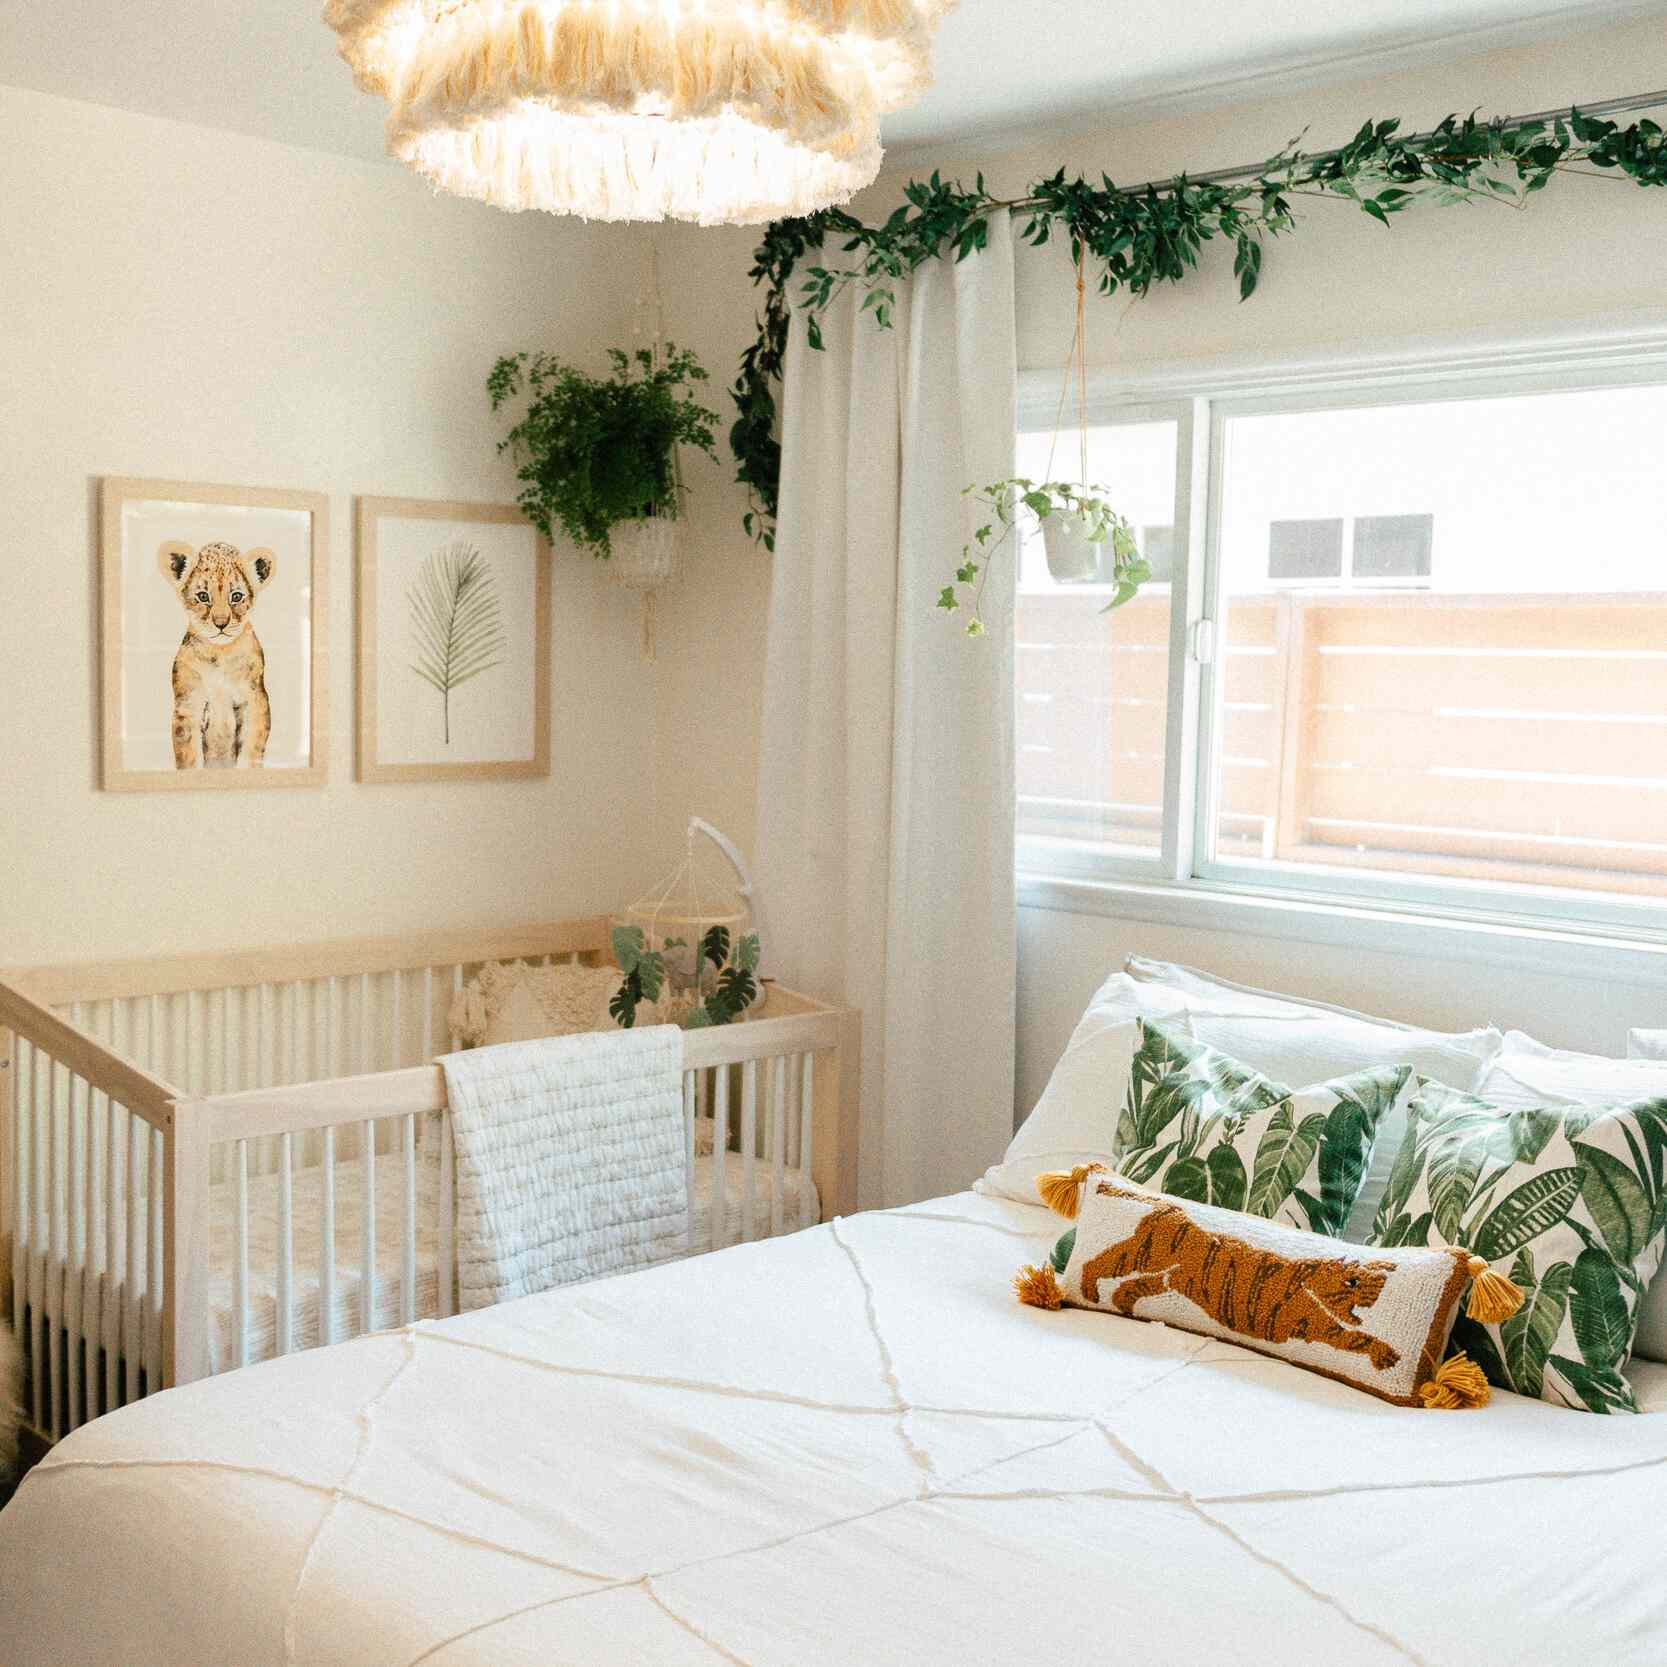 A white nursery with green and orange accents